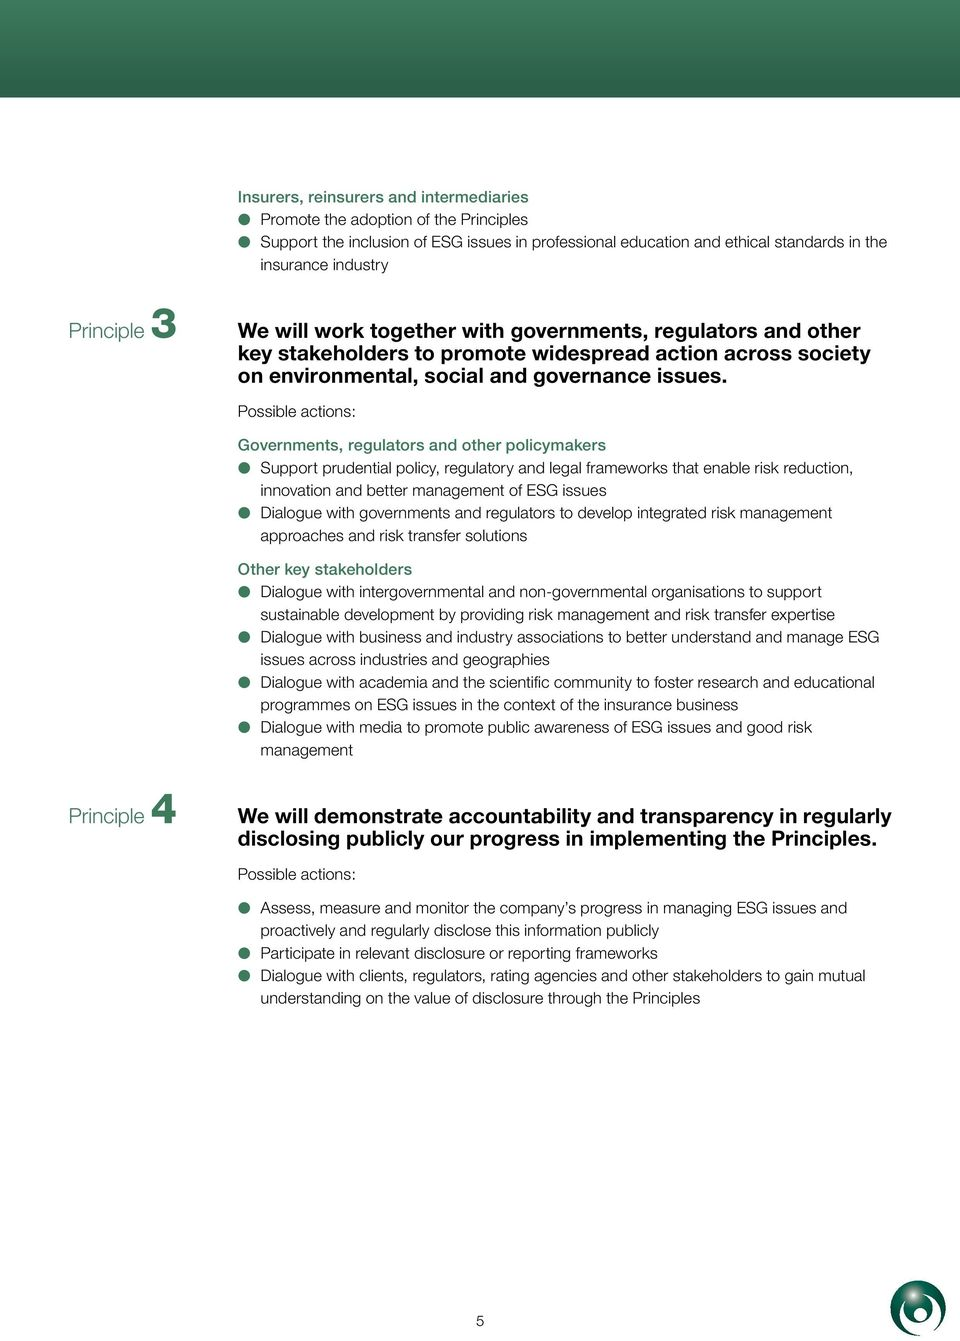 Possible actions: Governments, regulators and other policymakers l Support prudential policy, regulatory and legal frameworks that enable risk reduction, innovation and better management of ESG